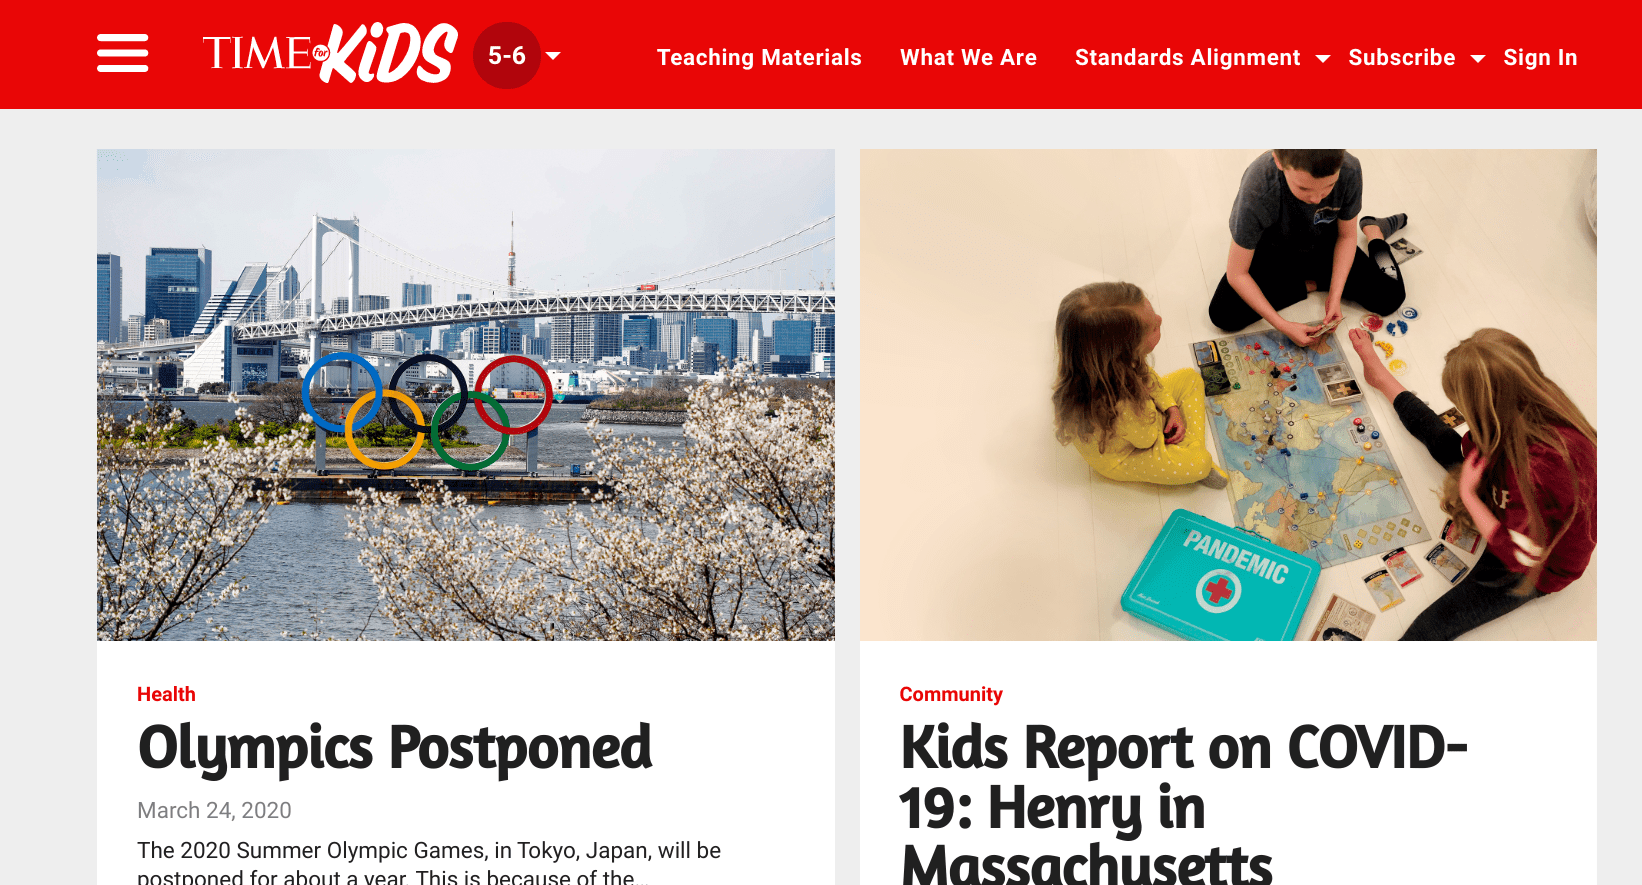 Giving Kids Access to the News with TIME for kids